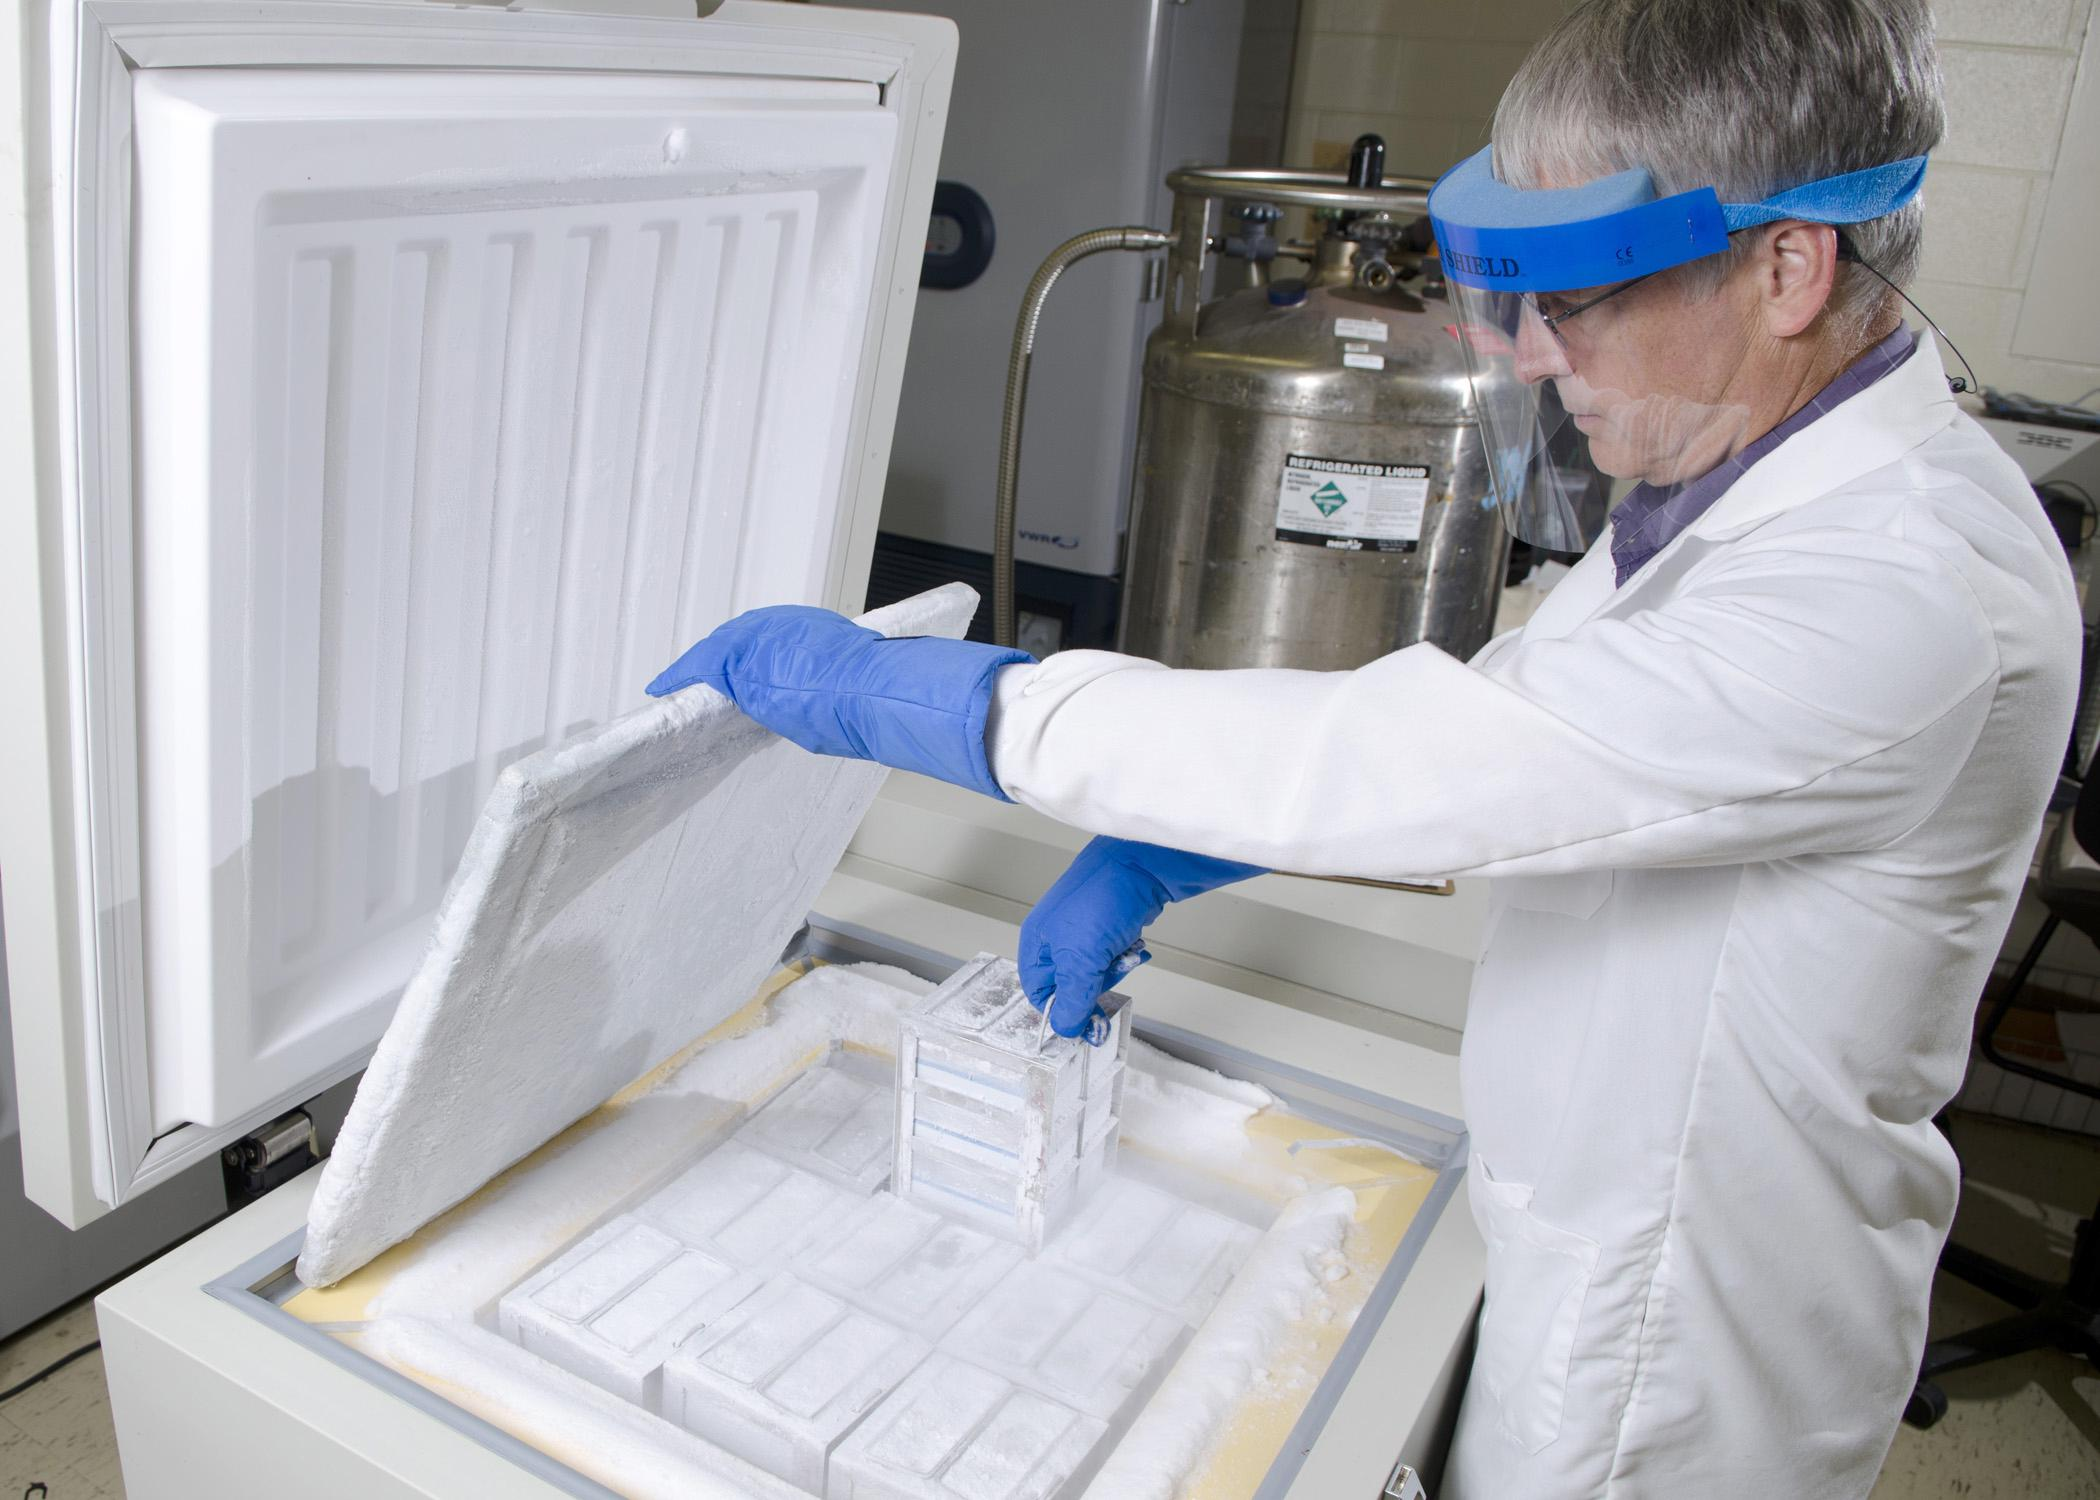 A power outage caused by a natural disaster can destroy years of research and data collection. Larry Hanson uses the Mississippi State University College of Veterinary Medicine's cryogenic freezer to store fish cell cultures at -150 degree Celsius. The freezer is linked to a backup liquid nitrogen tank to keep it cold even when the electricity fails. (Photo by MSU College of Veterinary Medicine/Tom Thompson)